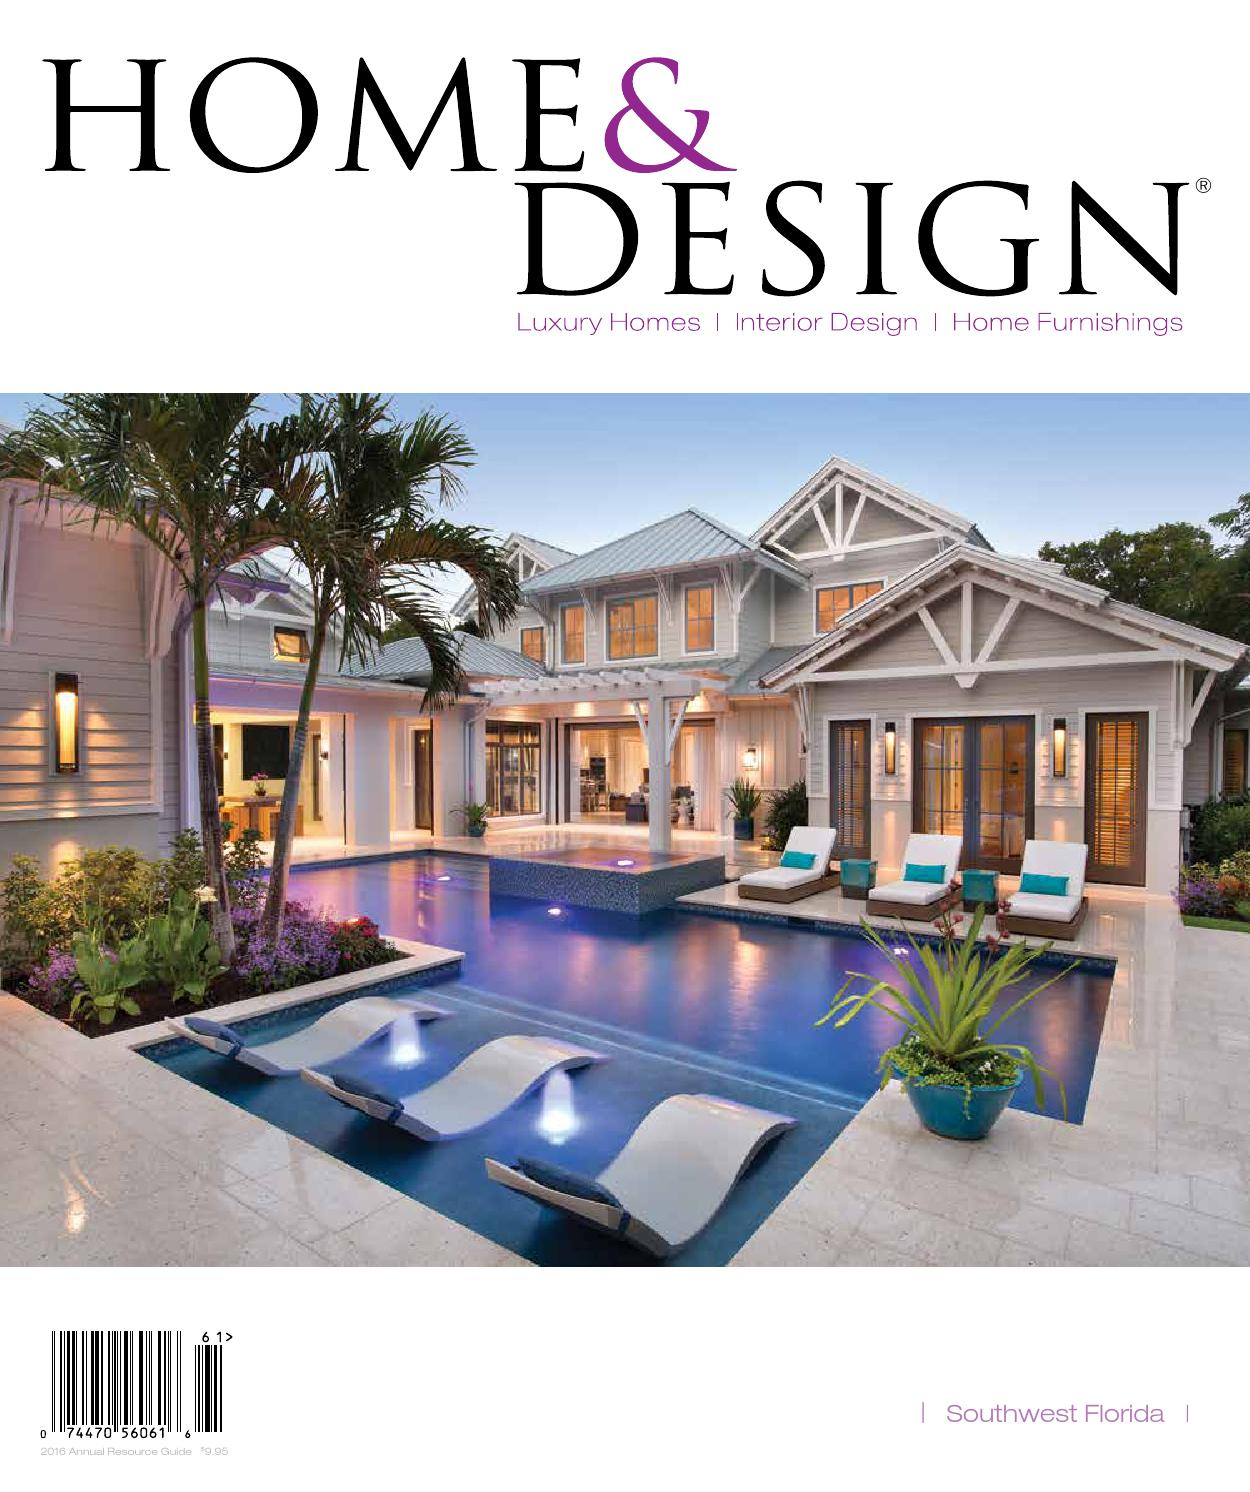 home design magazine annual resource guide 2016 southwest